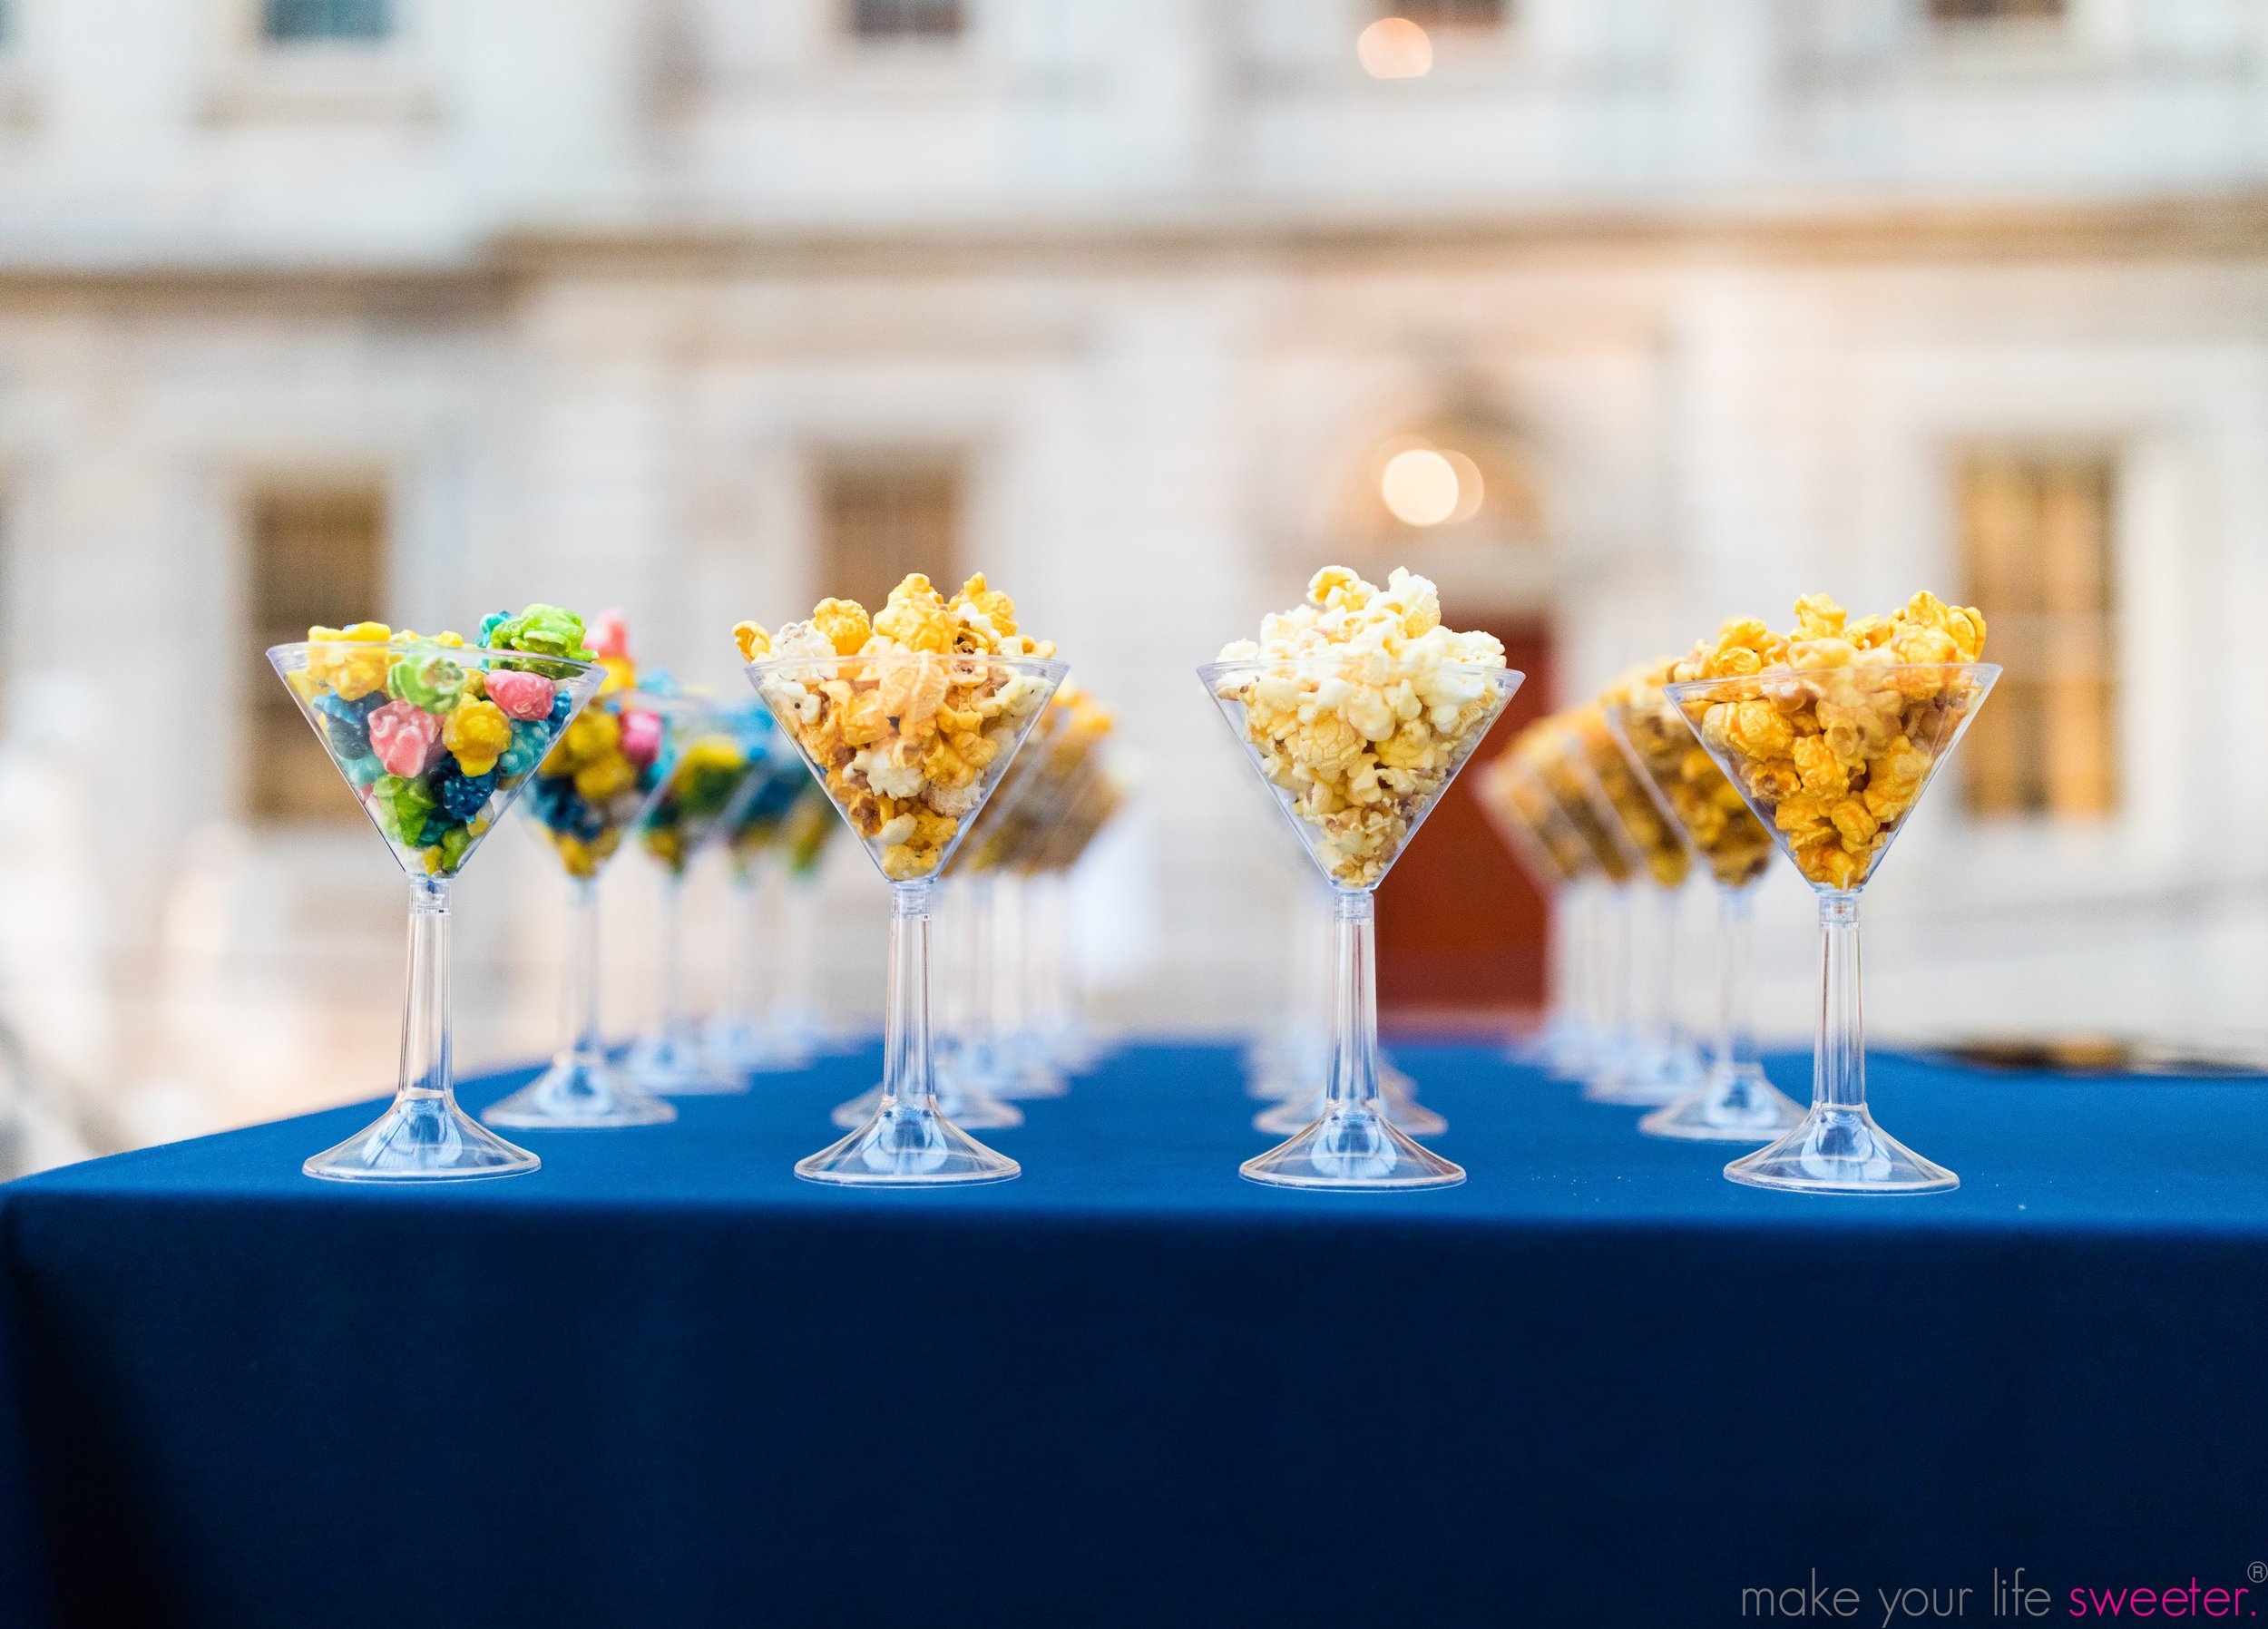 Make Your Life Sweeter Events - The Met Grand Tour - HotPoppin Gourmet Popcorn Bar served in Martini Glasses